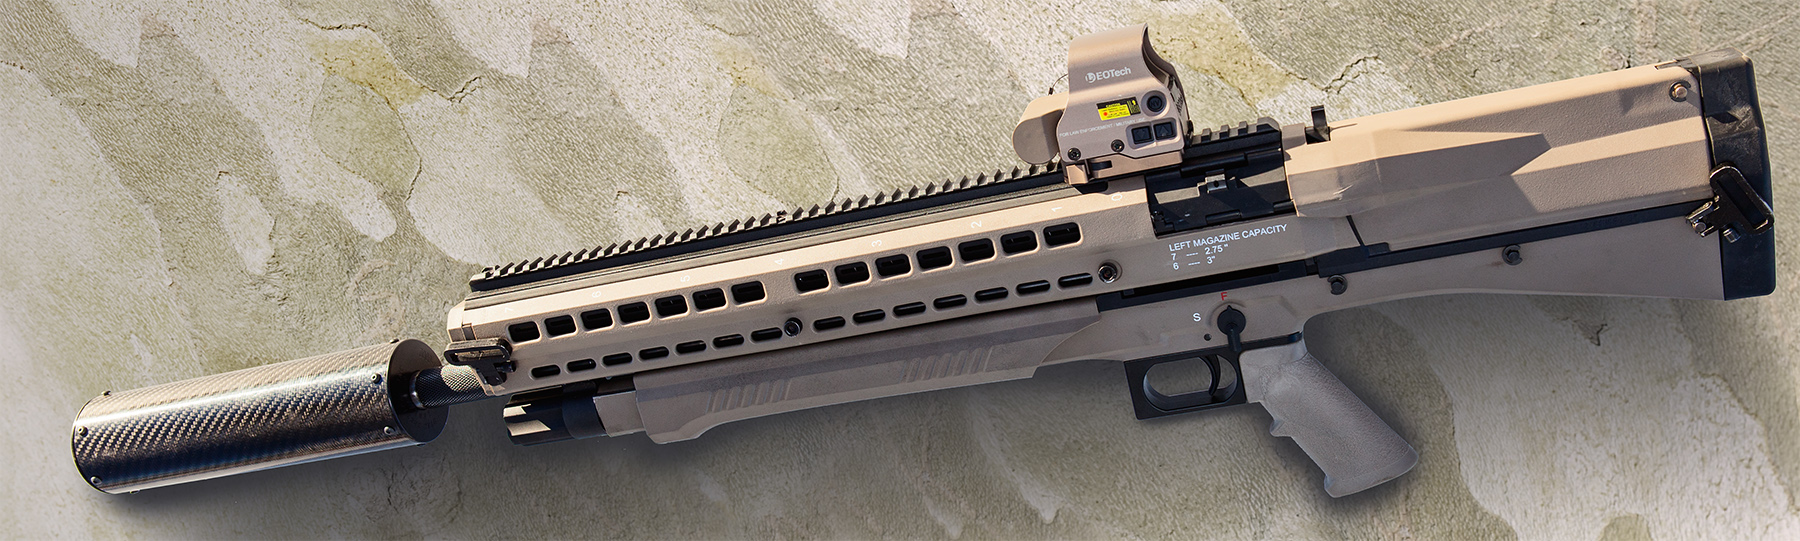 UTS 15 with carbon fiber suppressor and EOTech sight